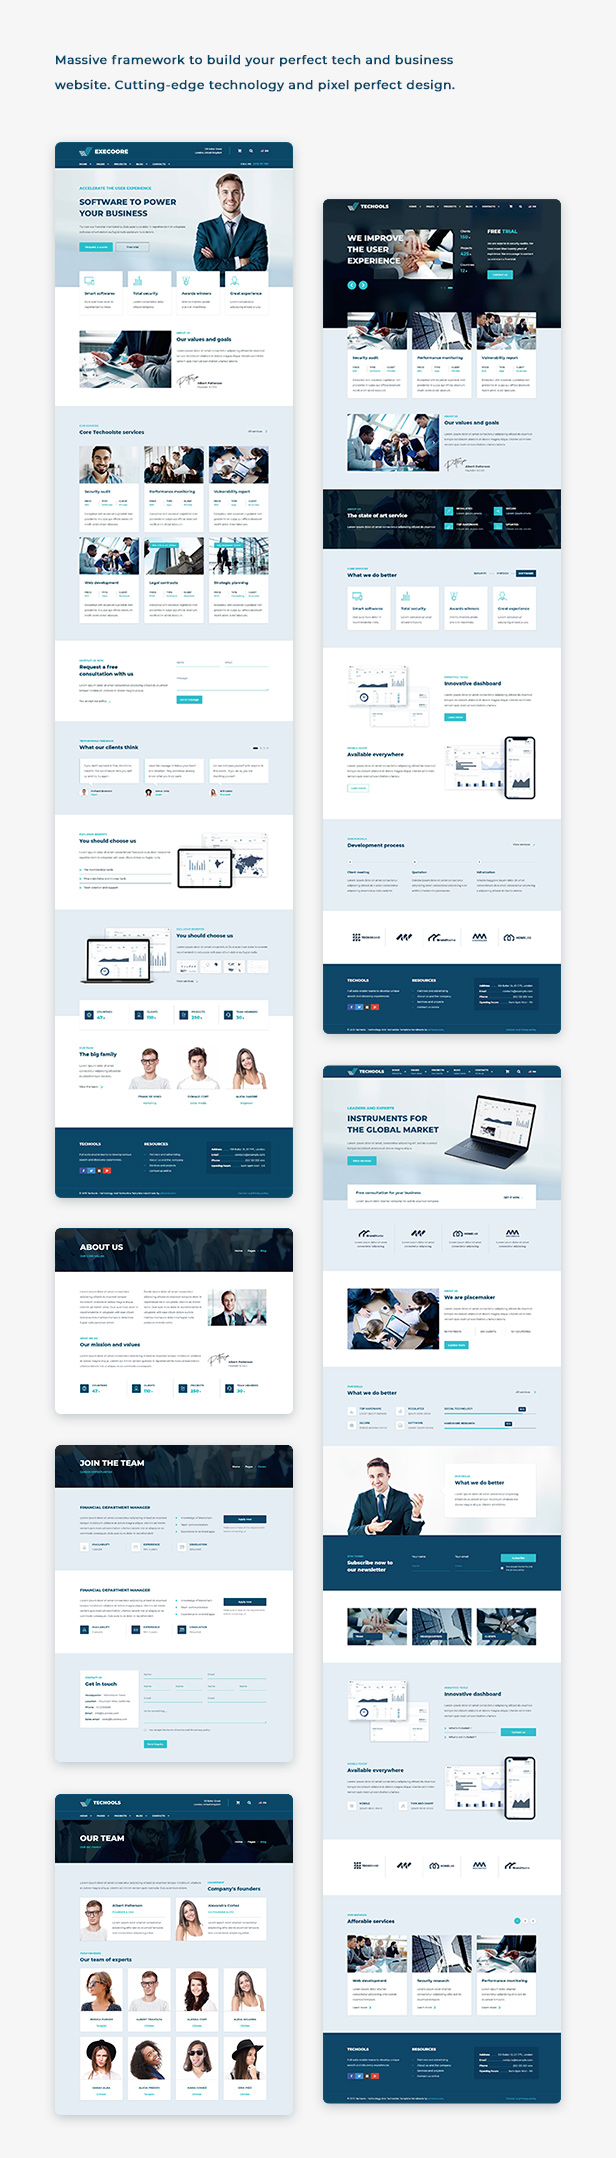 Execoore - Technology And Fintech Template - 2